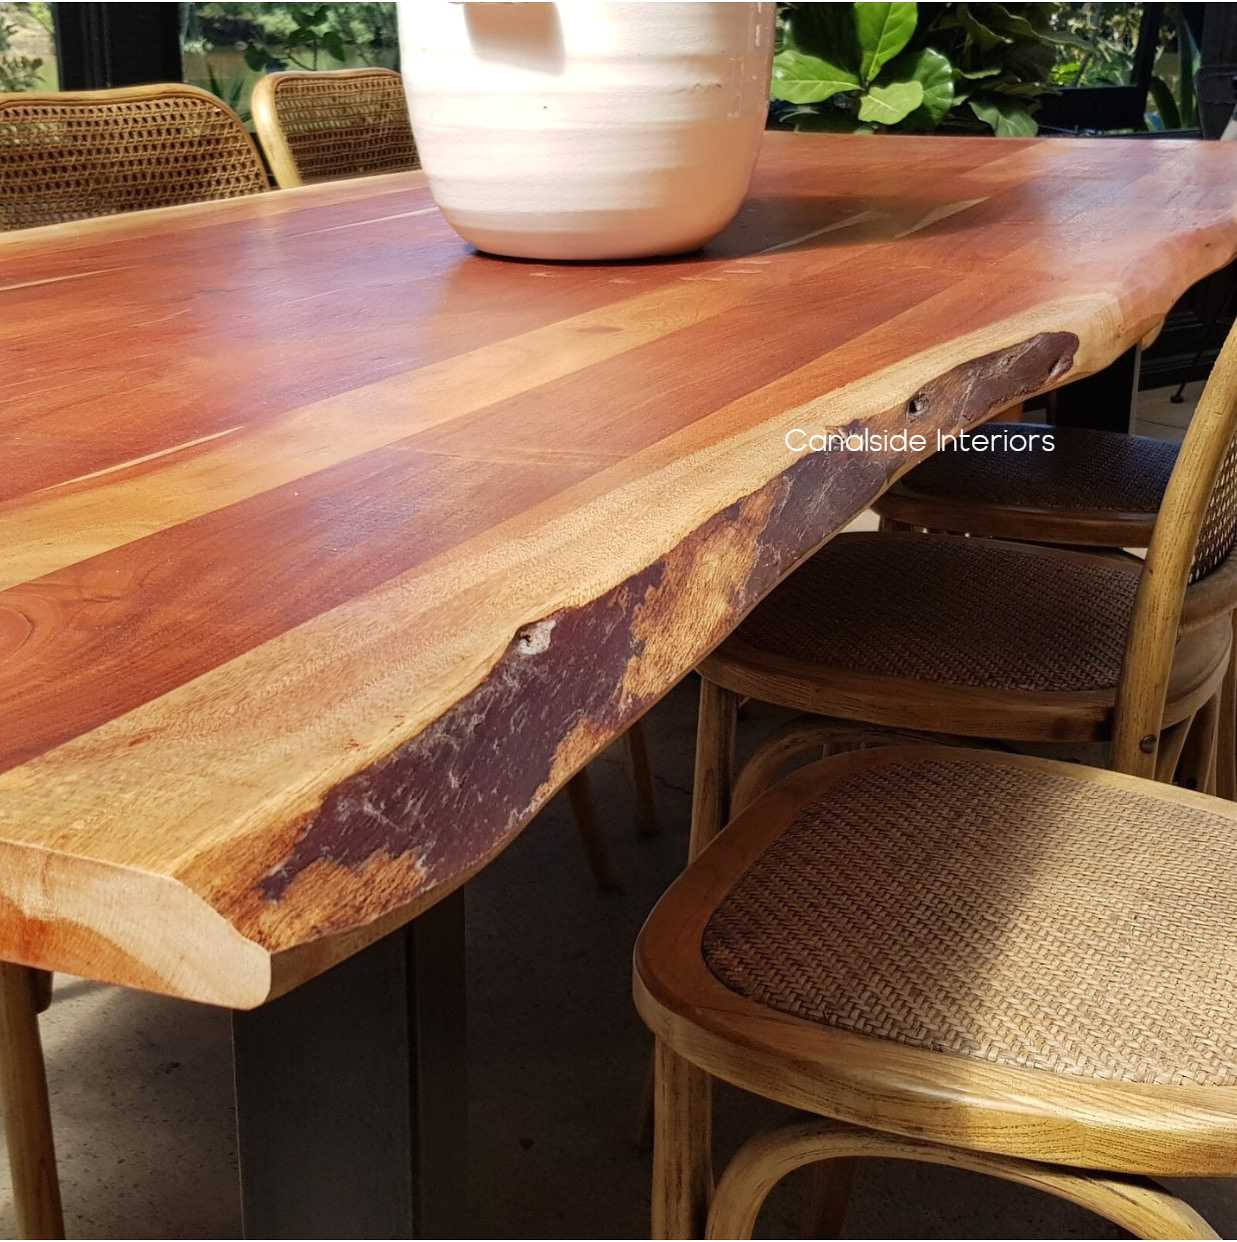 Picture of: Protractor Industrial Dining Table With Live Edge Wood Top 250cm In Stock Canalside Interiors